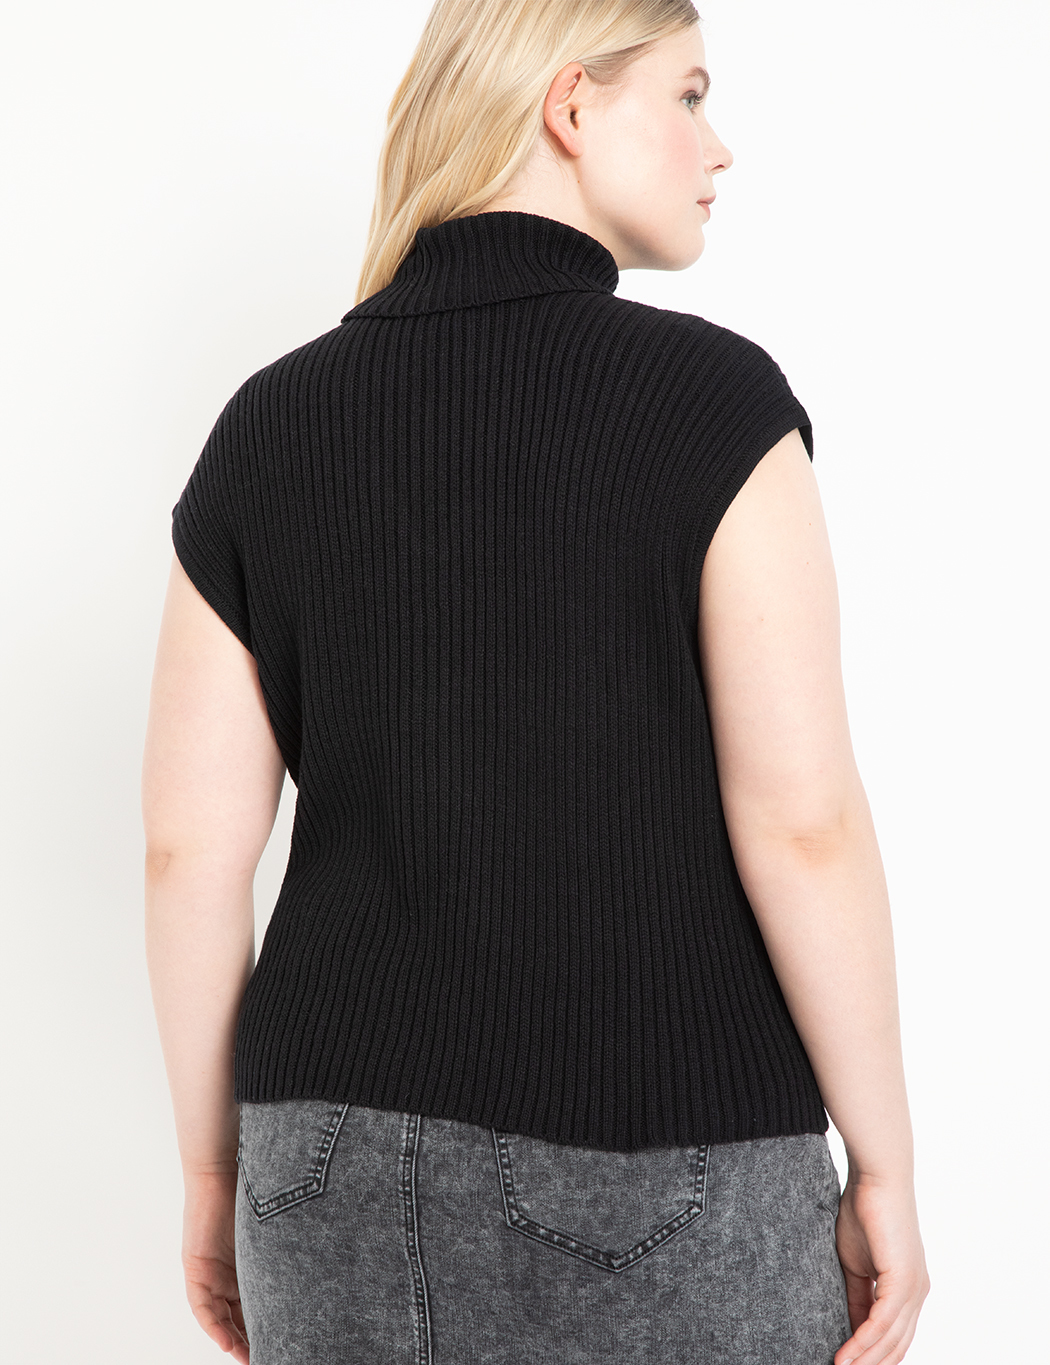 Turtleneck Cutout Sweater